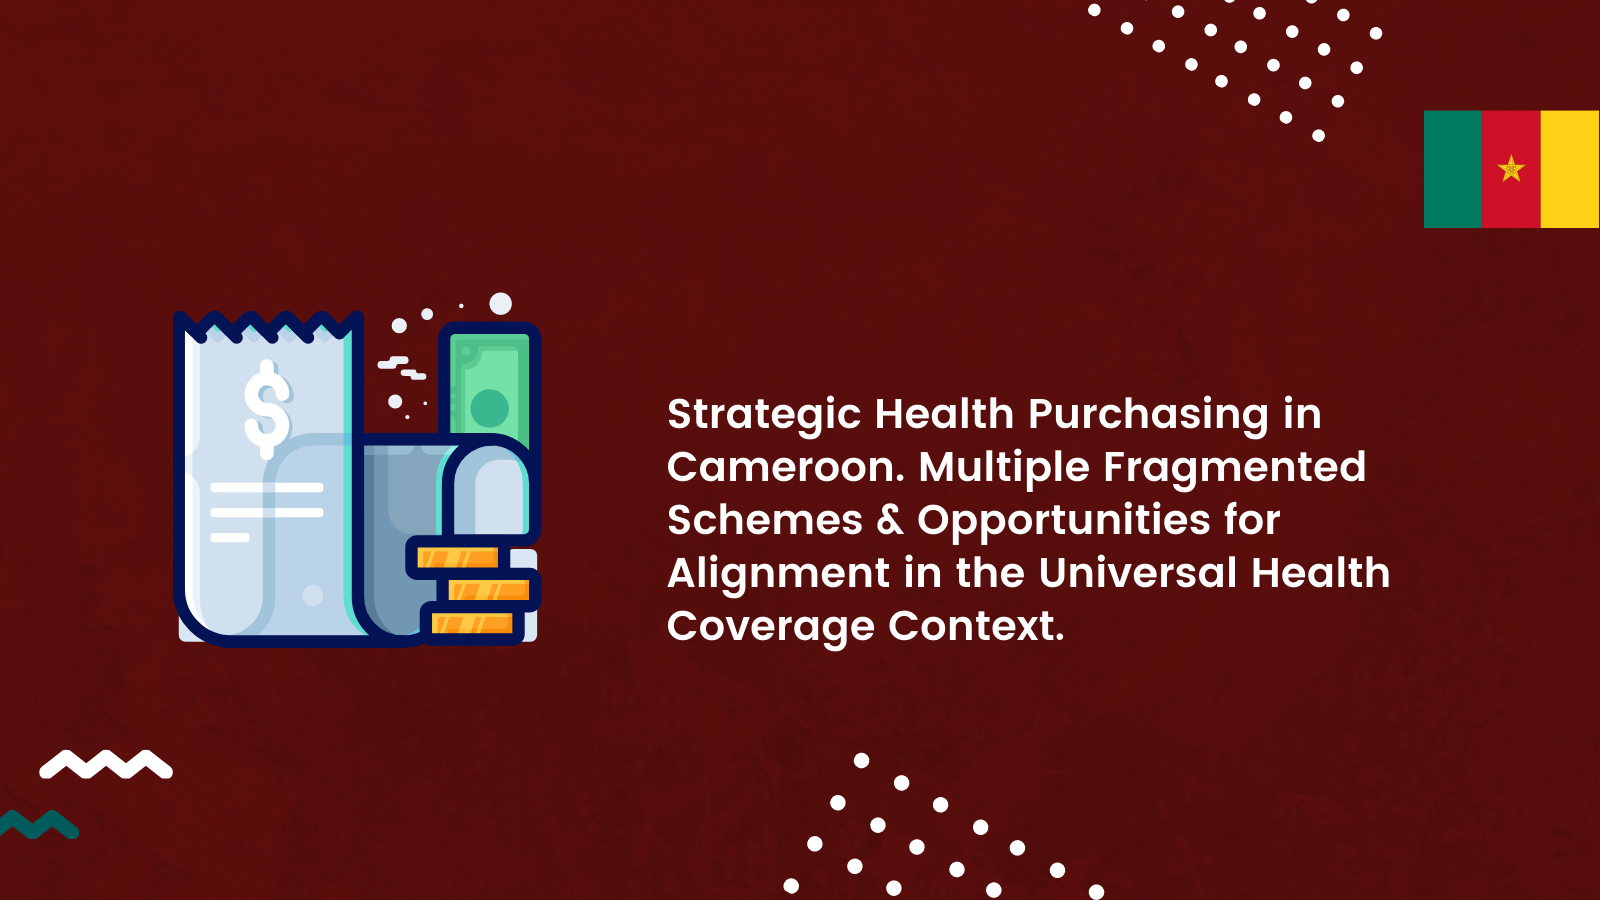 Strategic Health Purchasing in Cameroon. Multiple Fragmented Schemes and Opportunities For Alignment in the Universal Health Coverage Context.